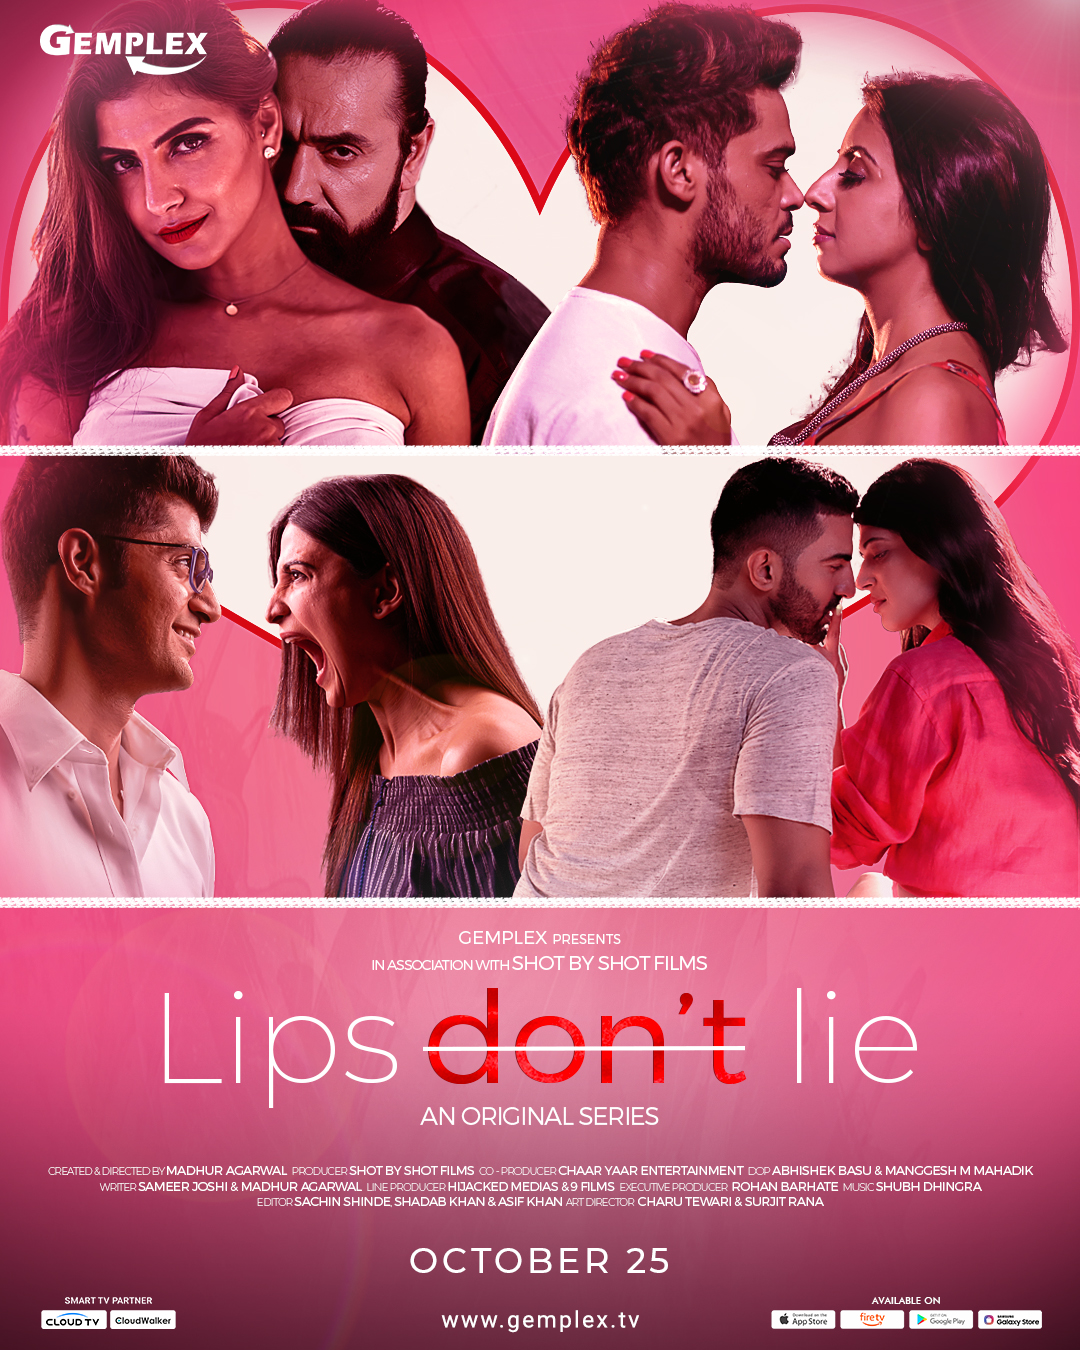 18+ Lips Don't Lie 2020 S01 Hindi Complete Gemplex Original Web Series 720p HDRip 1GB x264 AAC